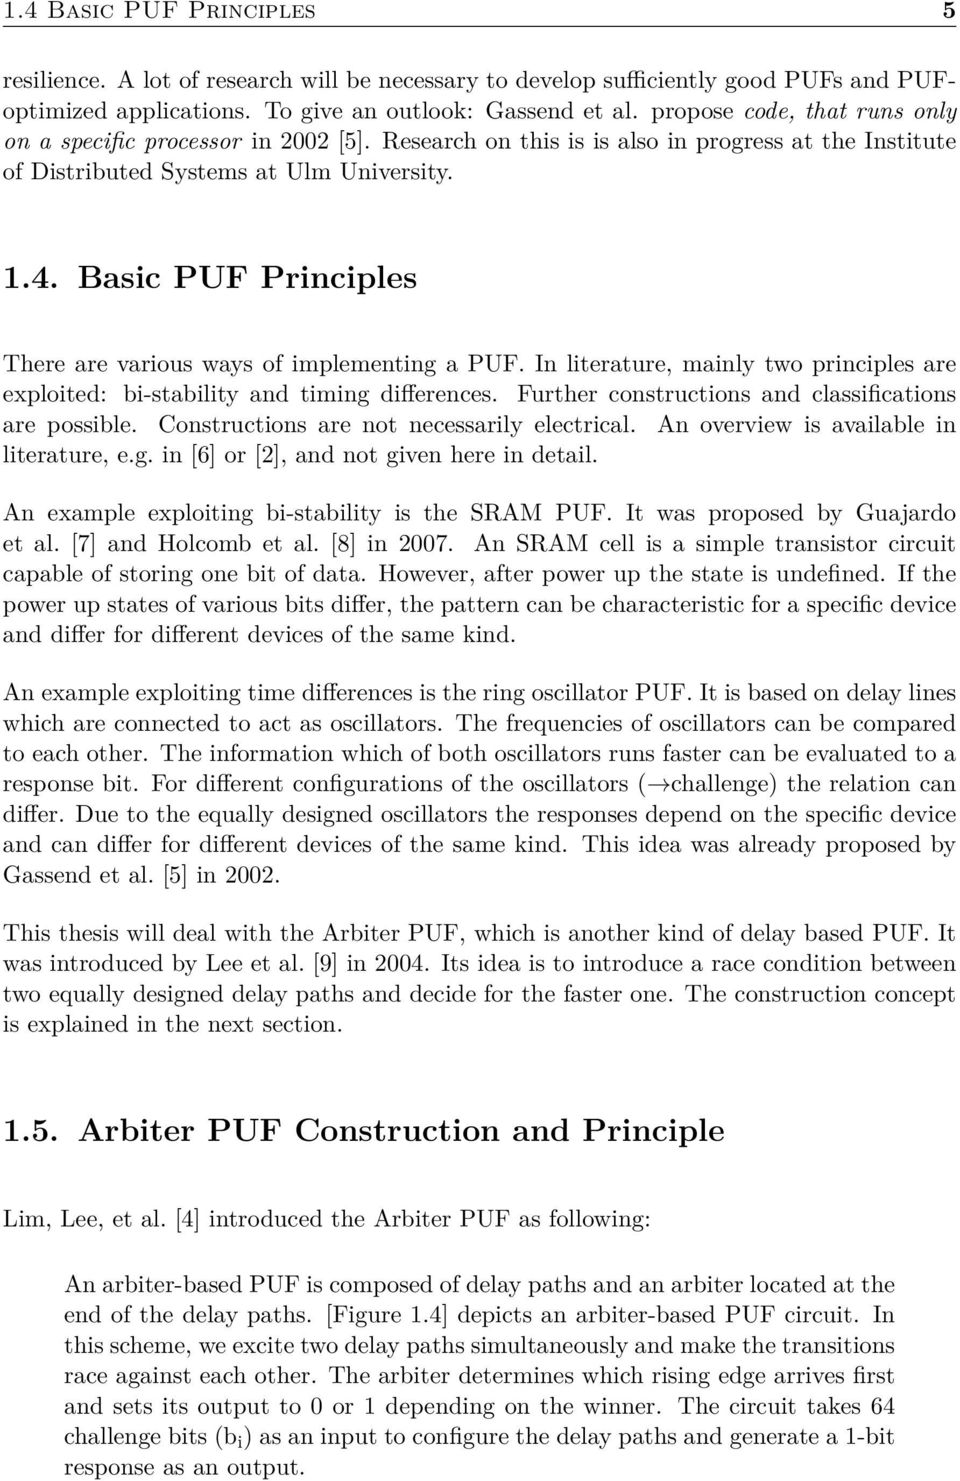 Basic PUF Principles There are various ways of implementing a PUF. In literature, mainly two principles are exploited: bi-stability and timing differences.